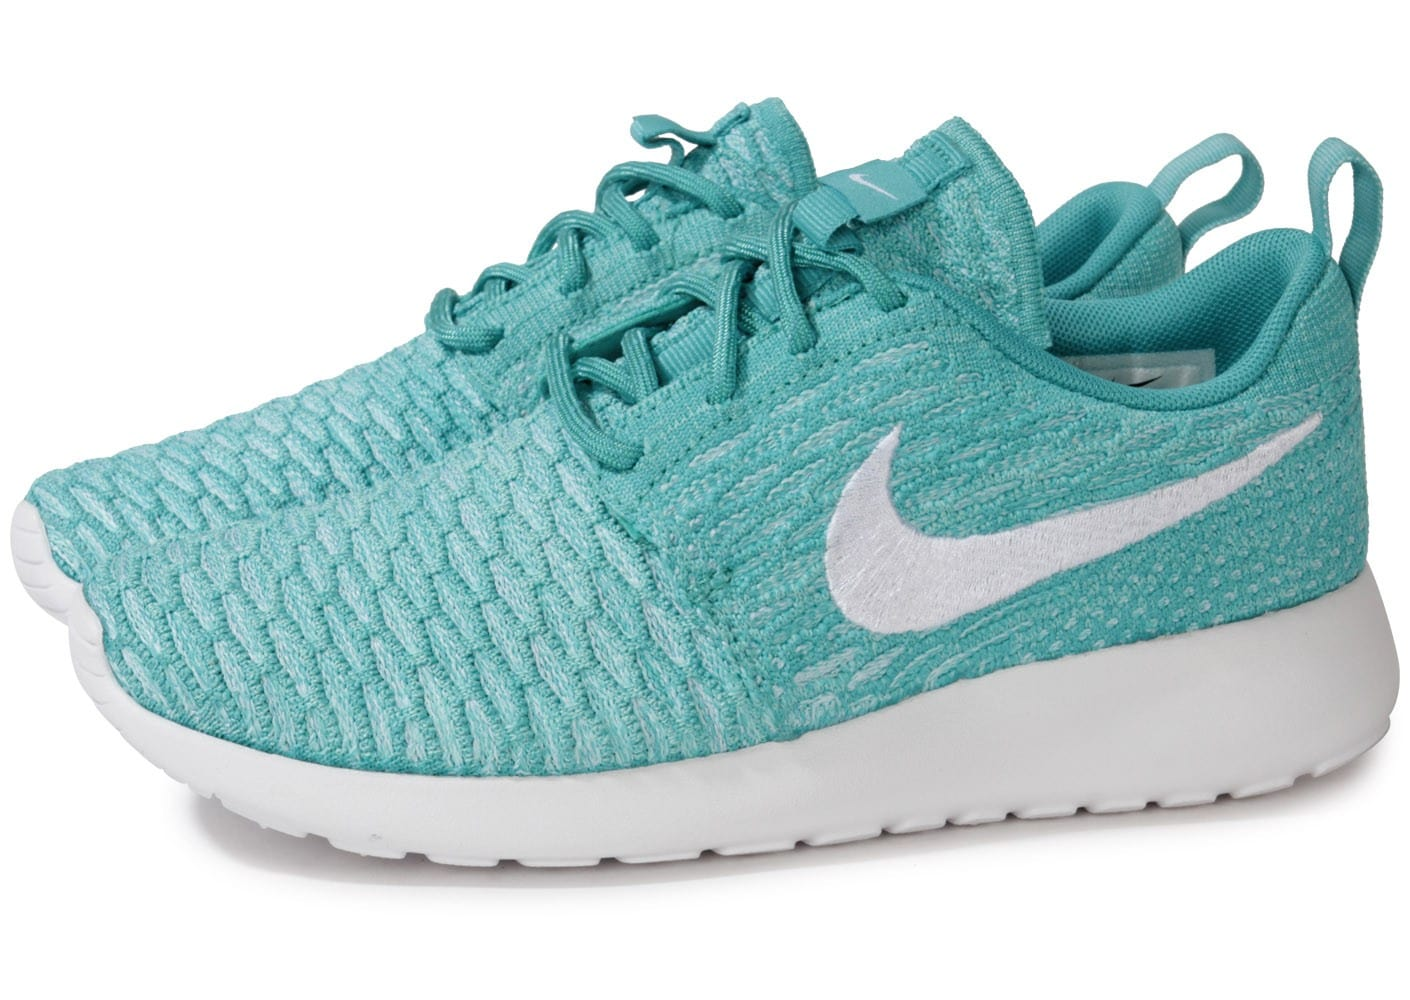 Nike Roshe Run Flyknit Turquoise Chaussures Chaussures